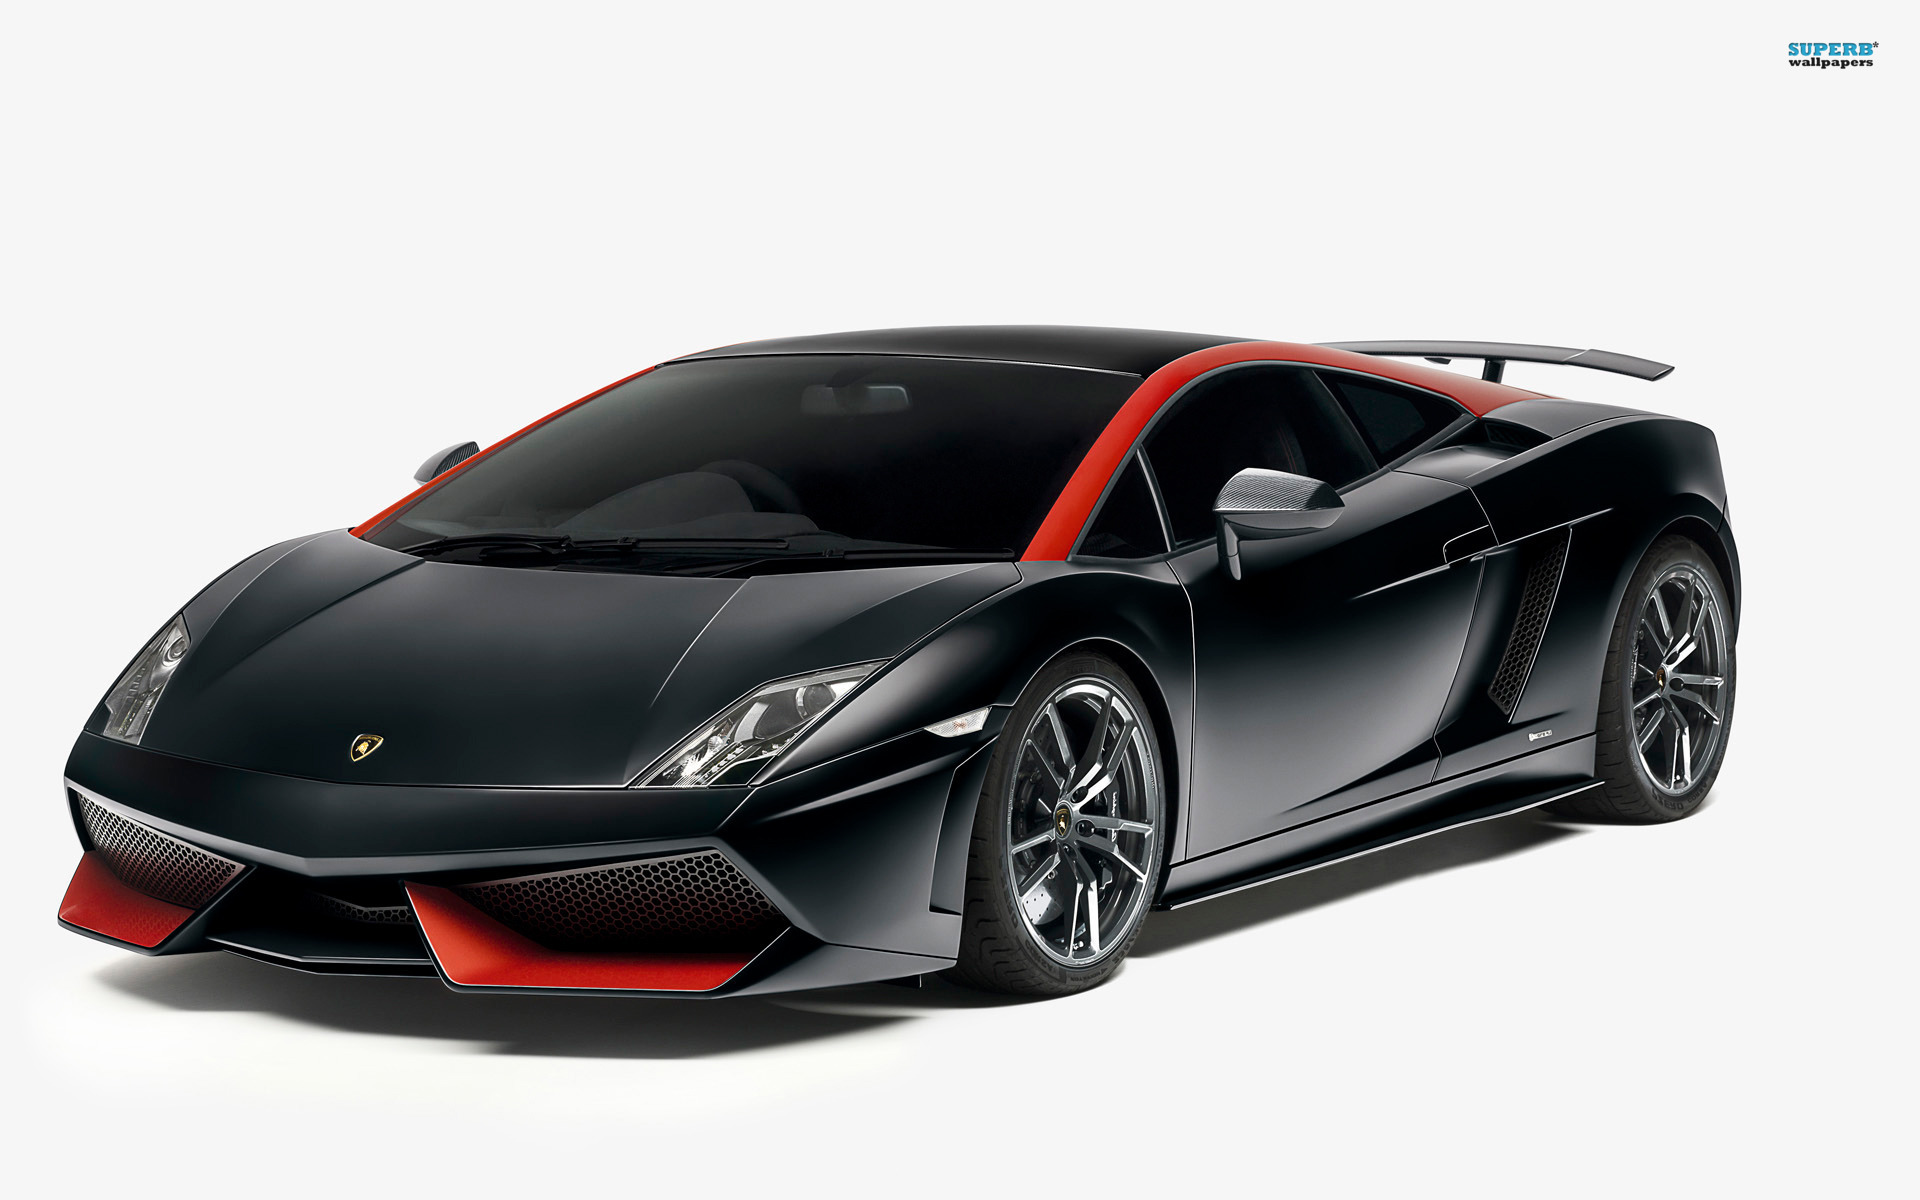 Lamborghini Gallardo Wallpaper 2013